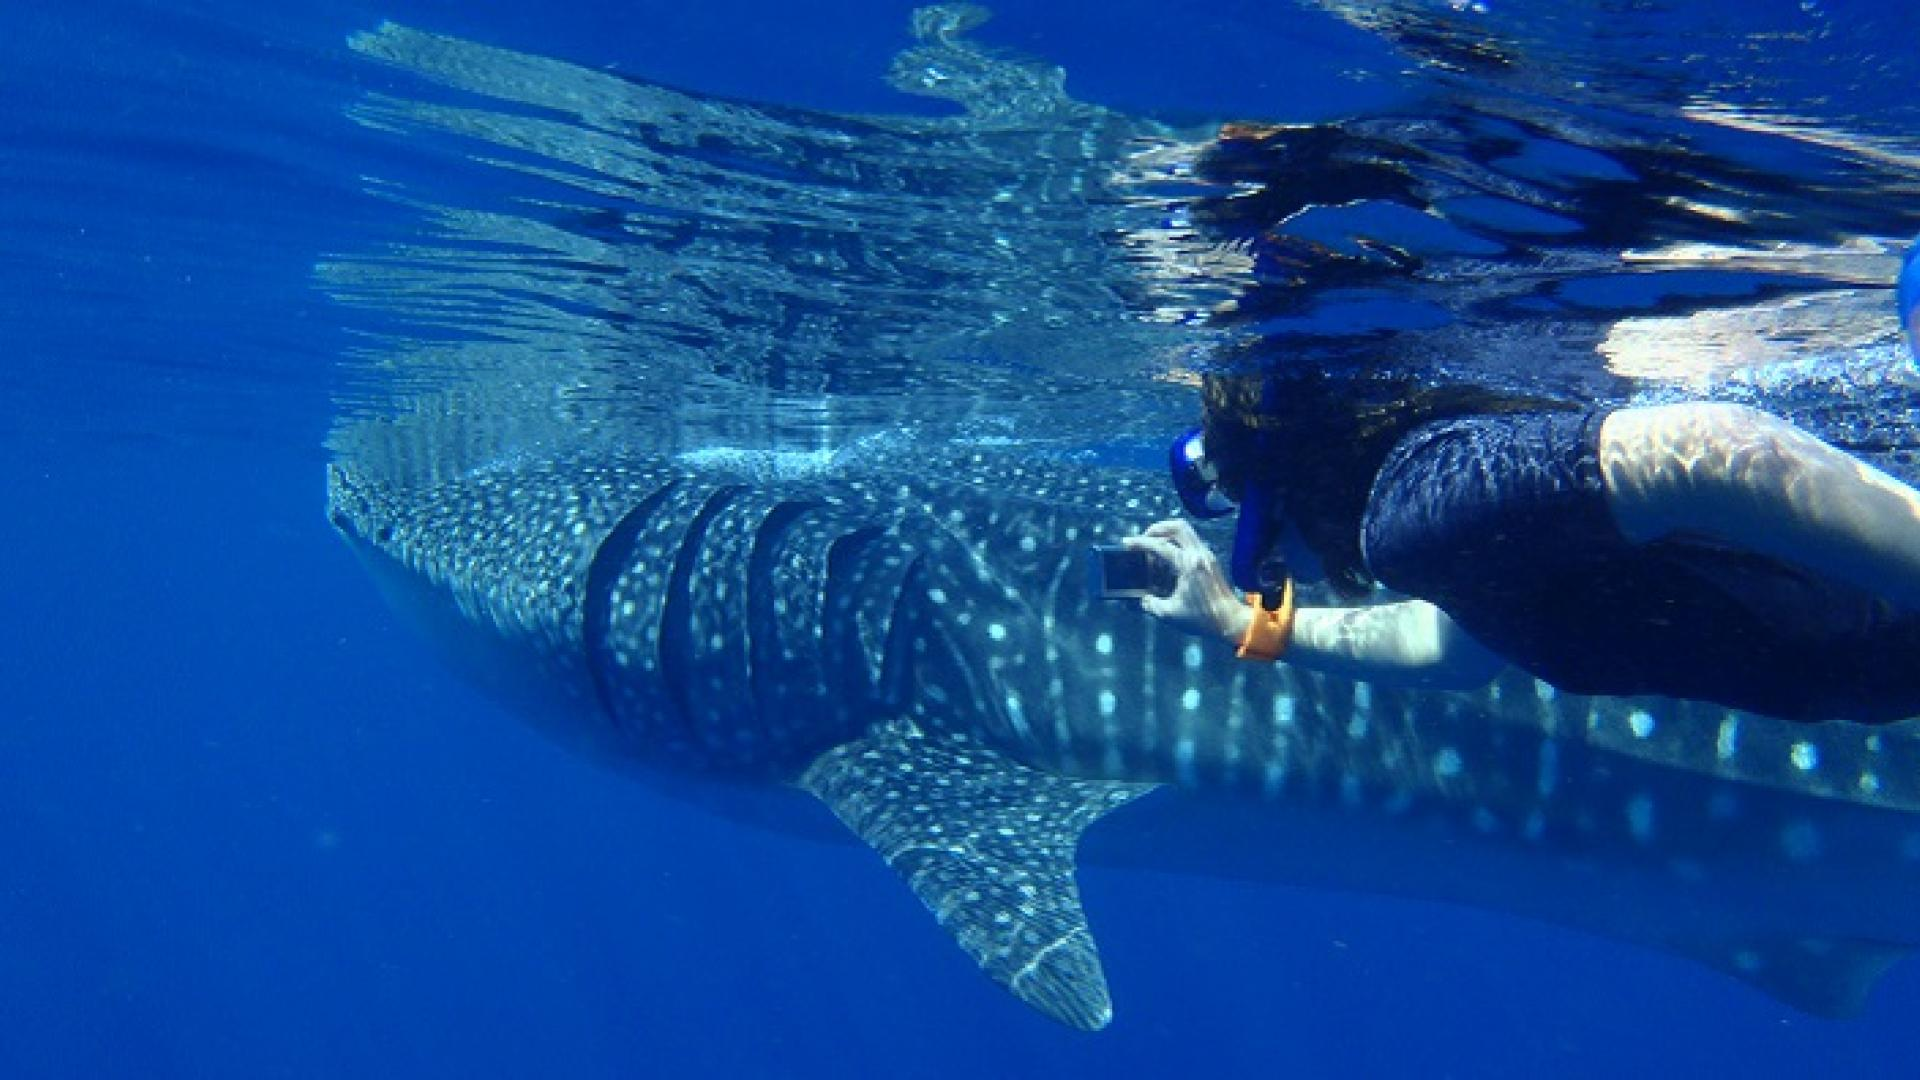 CEMSE AMCS MARS Juvenile Whale Sharks Have Been Discovered Gathering At A Coral Reef